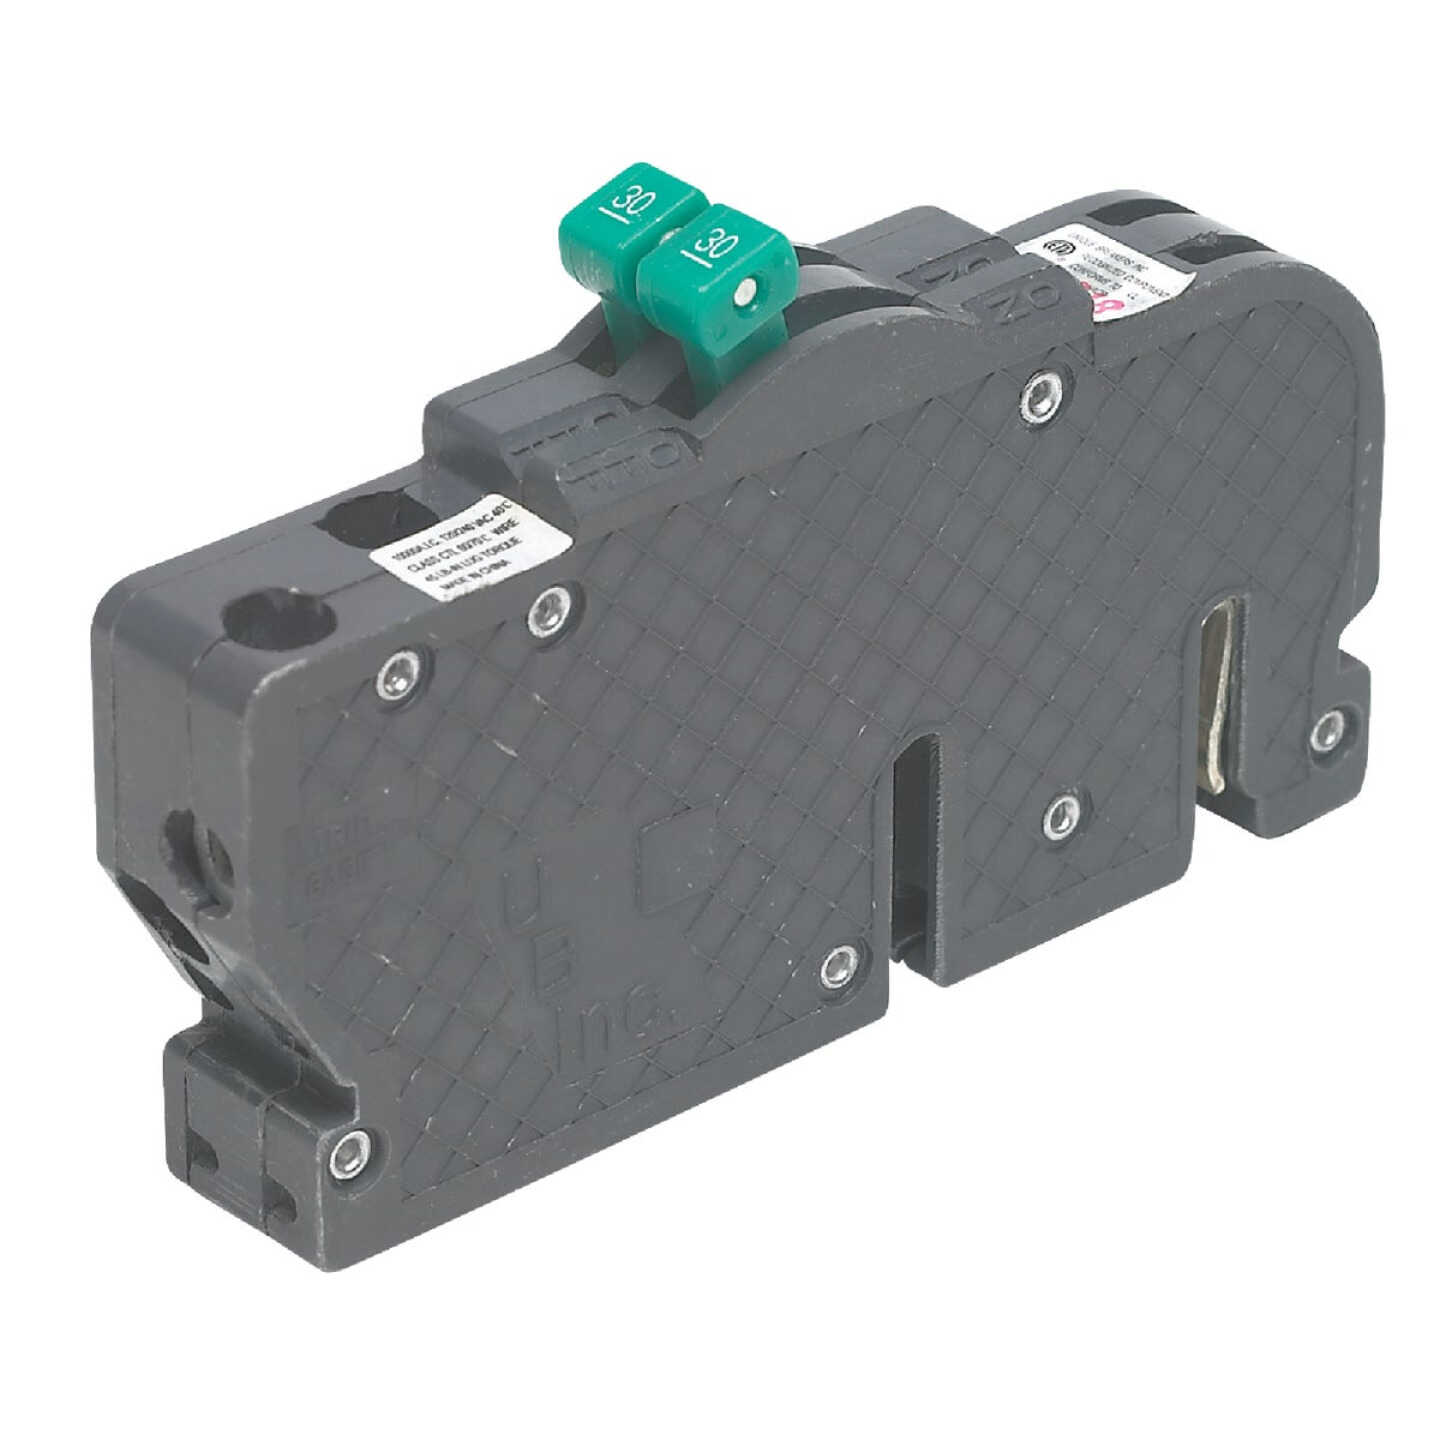 Connecticut Electric 20A/20A Twin Single-Pole Standard Trip Packaged Replacement Circuit Breaker For Zinsco Image 1